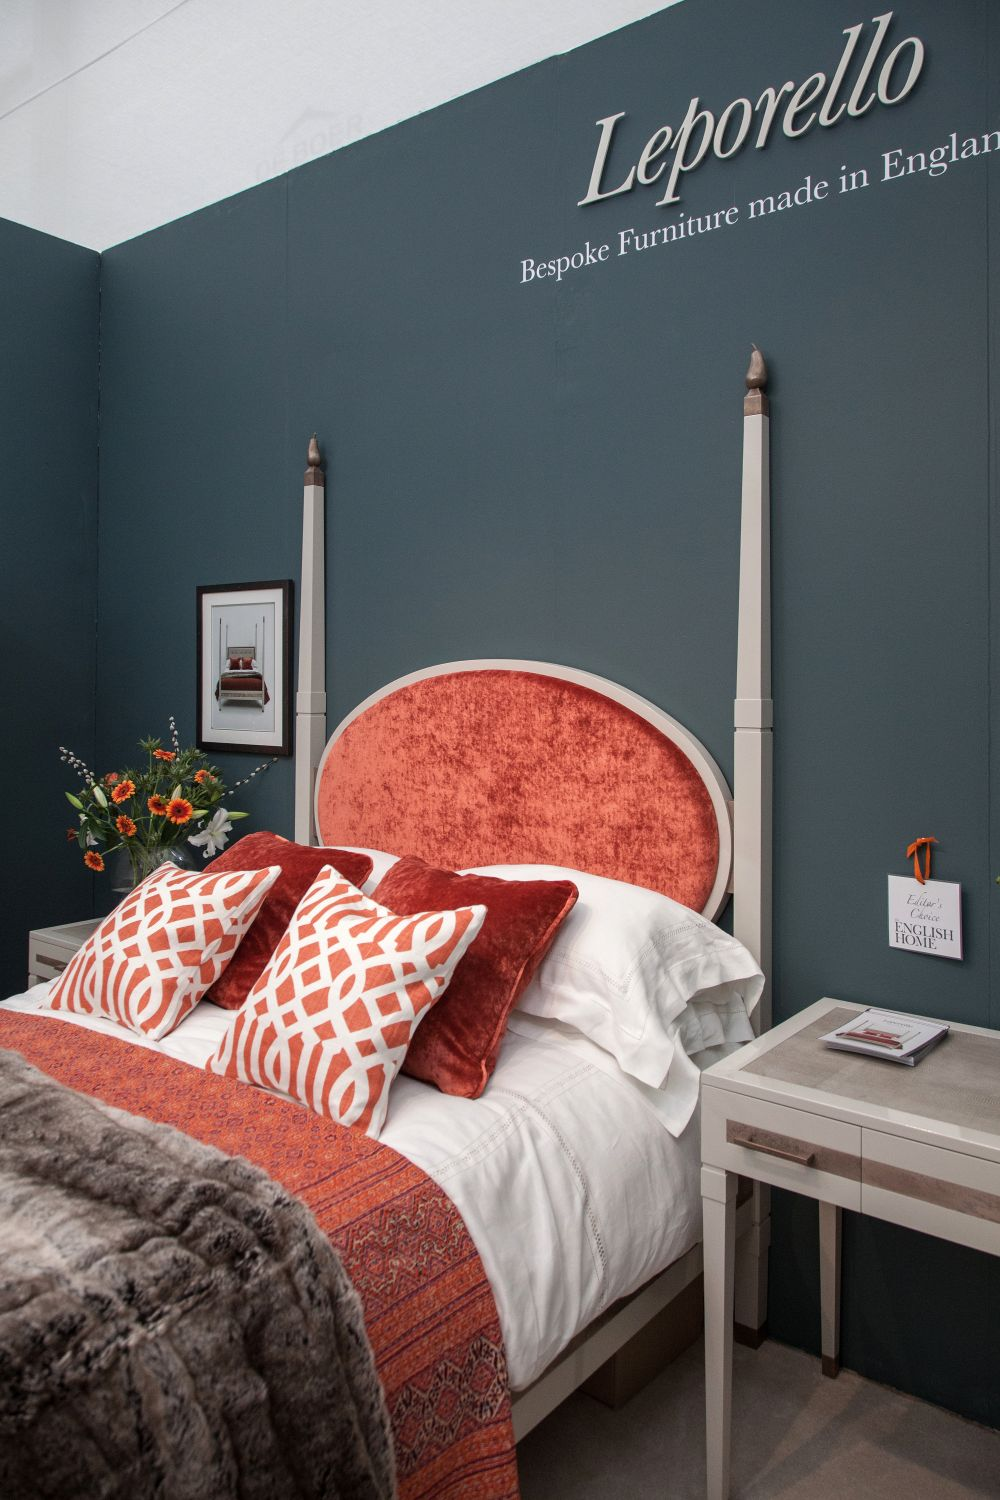 The bed can be the focal point of the room, especially if its design makes that easy